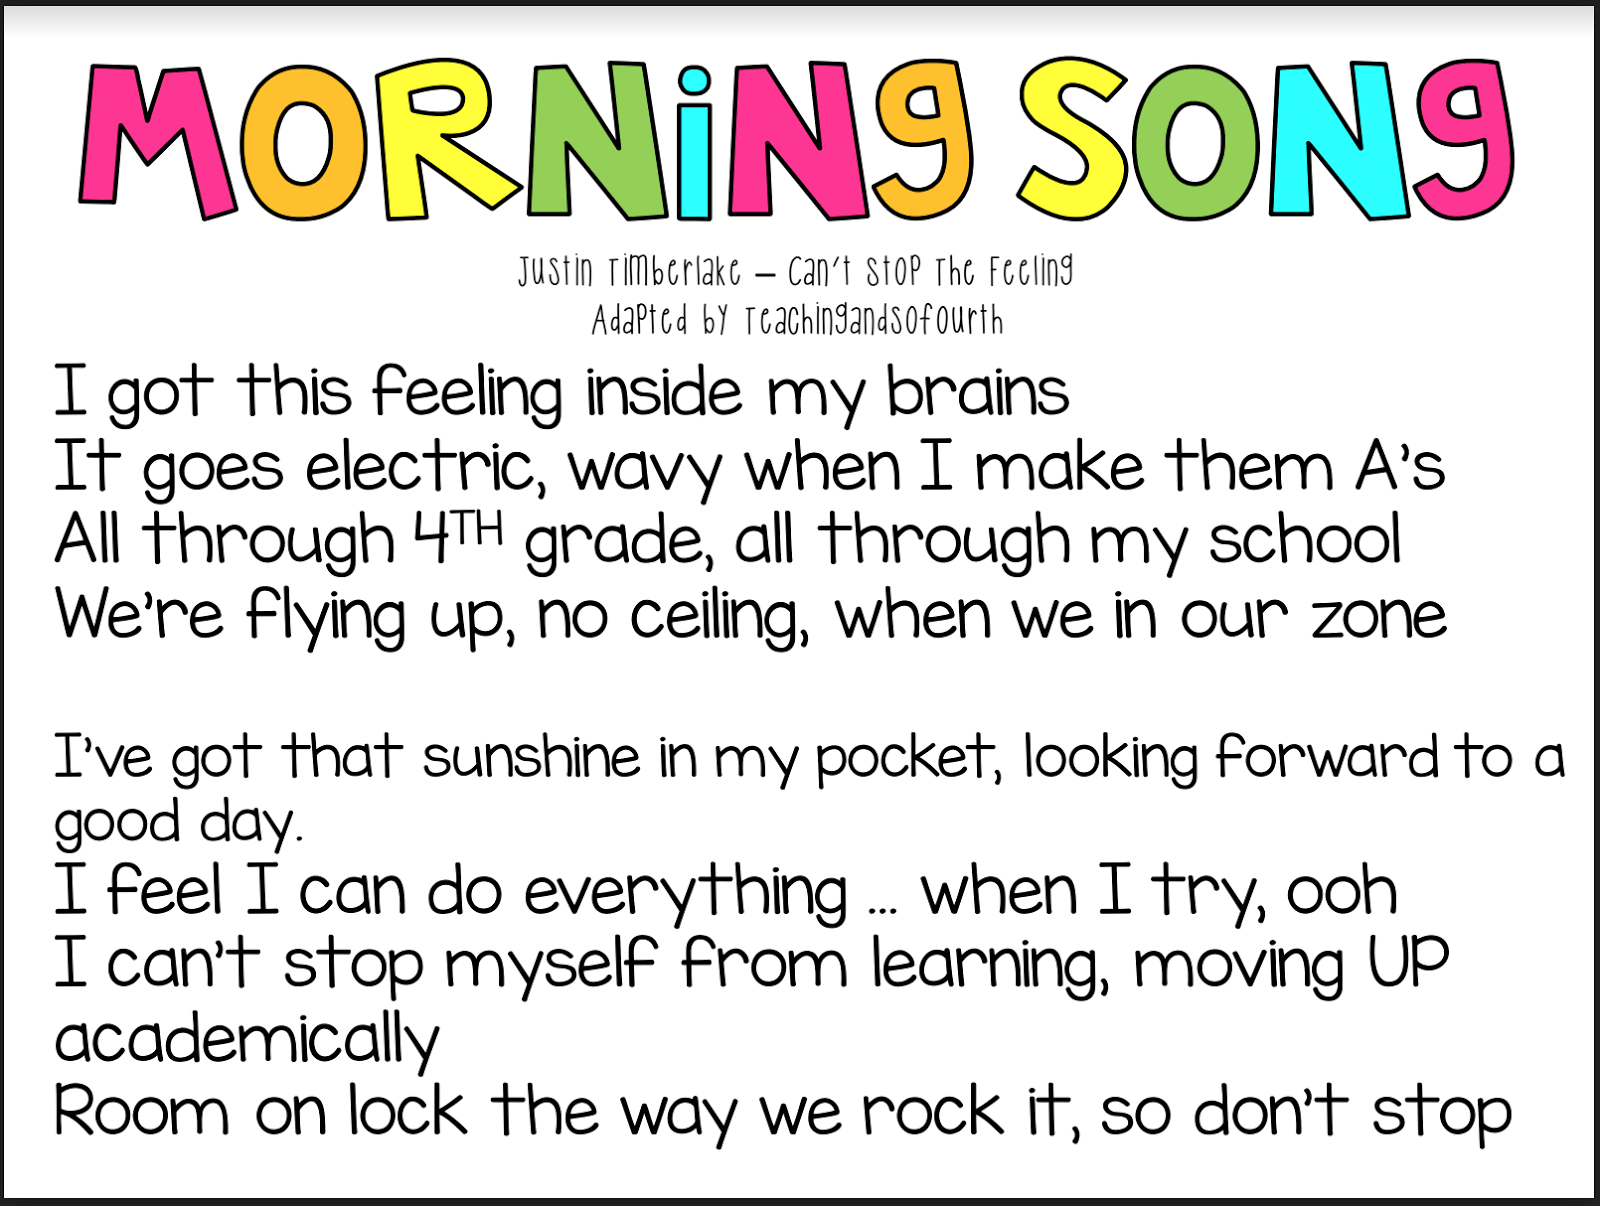 Teaching And So Fourth Morning Song